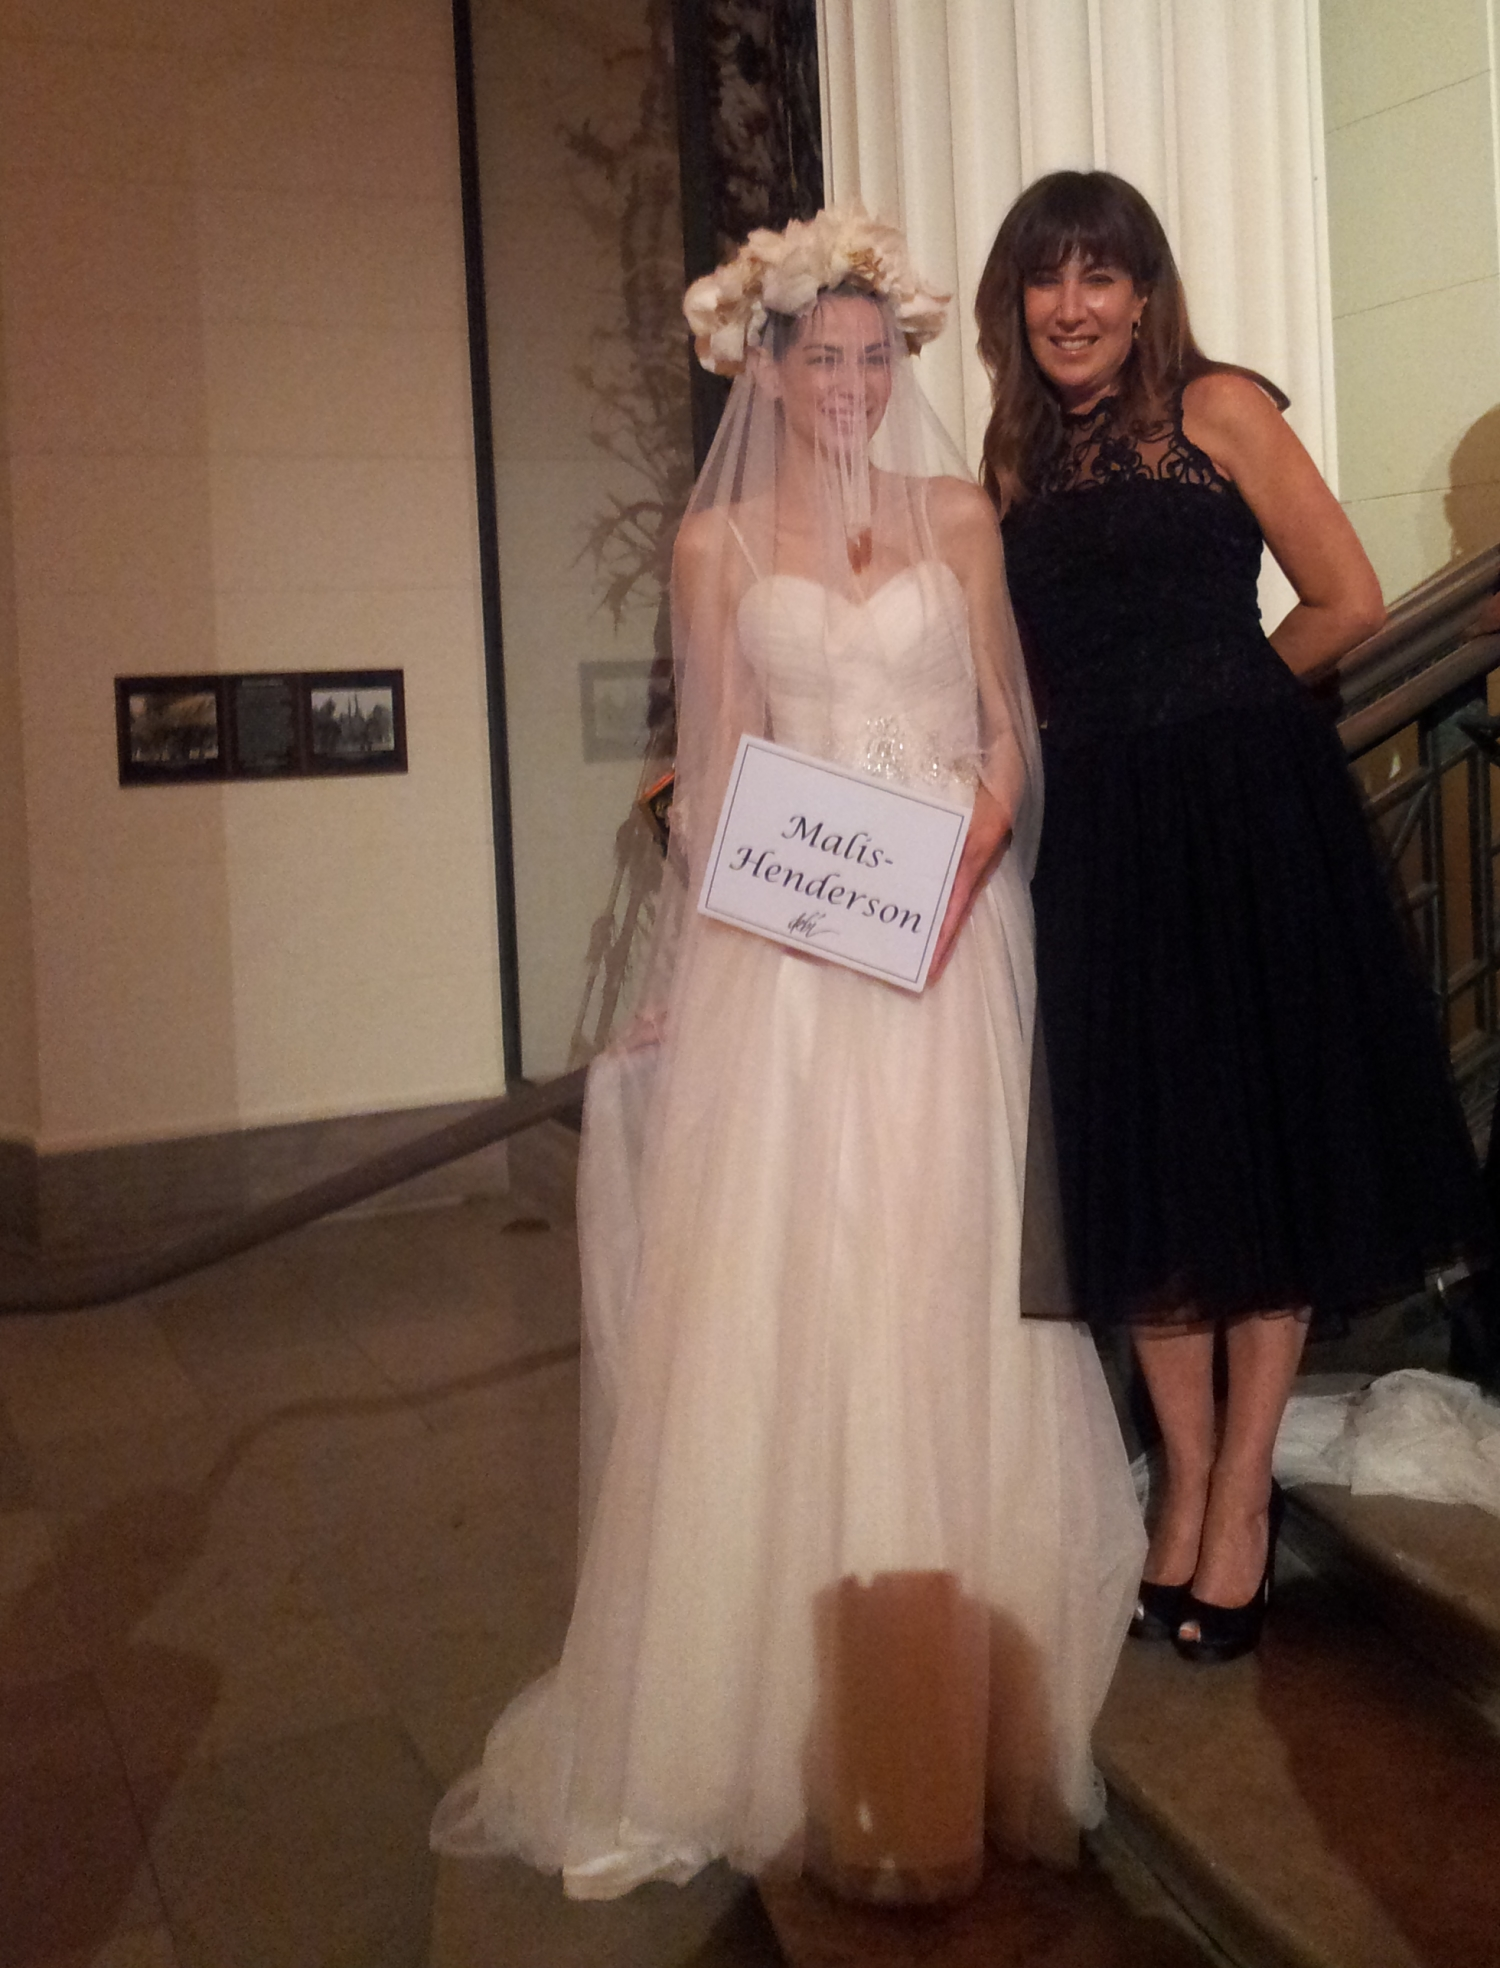 Each year at the DEBIs, guests are greeted by models that line the two huge curved stairways leading to the second floor, showing designs from the DEBI Nominees.  Here, the model is wearing Elen's fabulous design of a Runway Floral Headpiece and veil, with Elen proudly by her side.